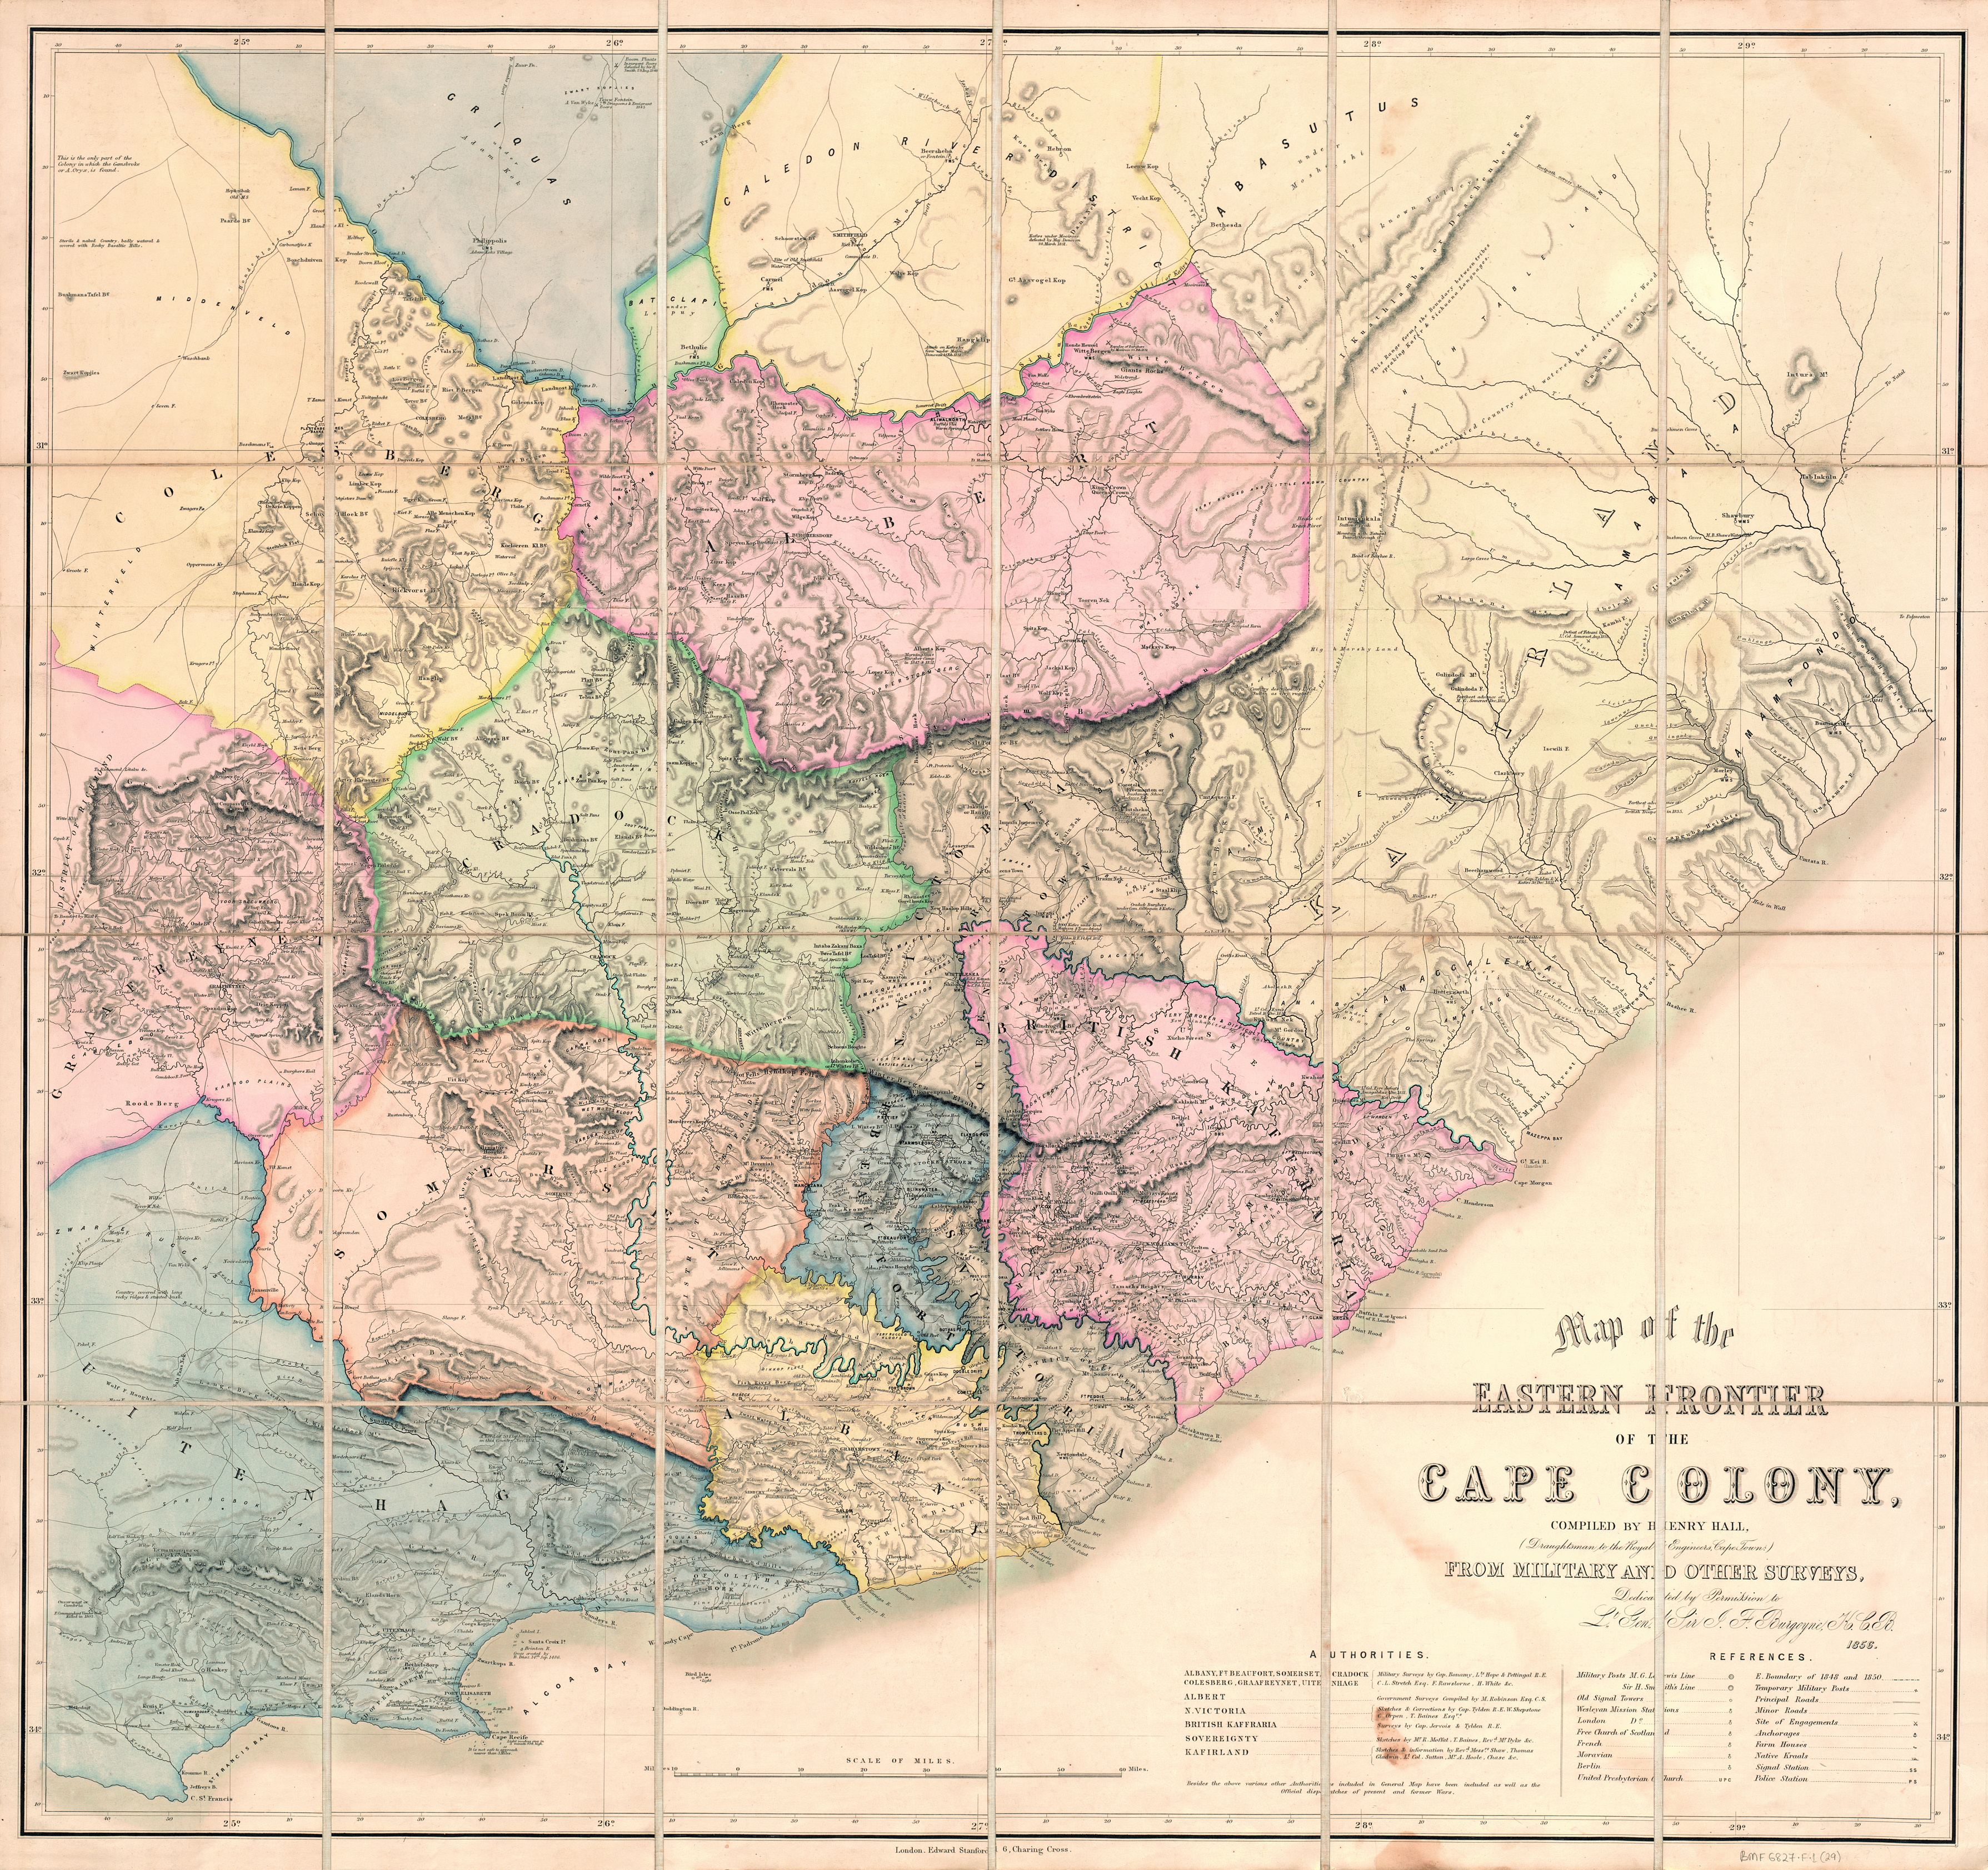 Moravian Campus Map.Map Of The Eastern Frontier Of The Cape Colony Uct Libraries